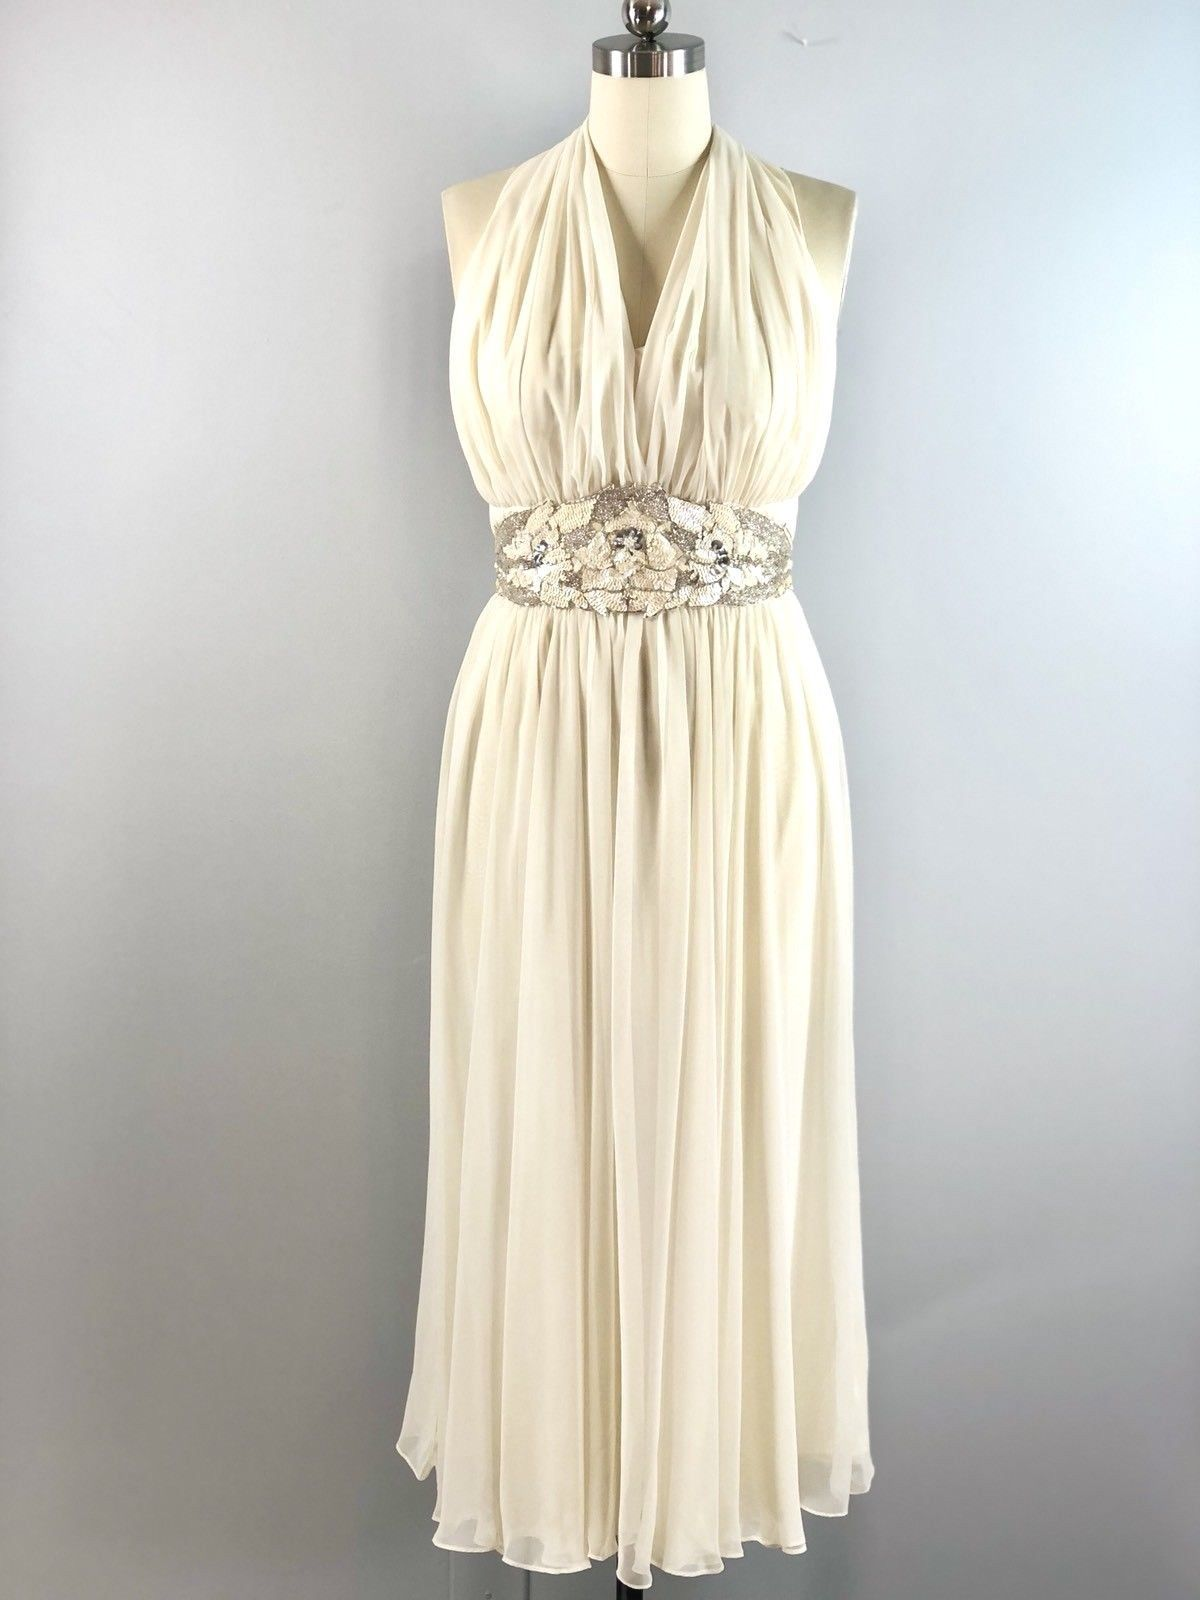 19cee4e2b71 Ivory polyester chiffon halter dress from 1970s Ursula. Gorgeous sequin  accent at waist. Gathered